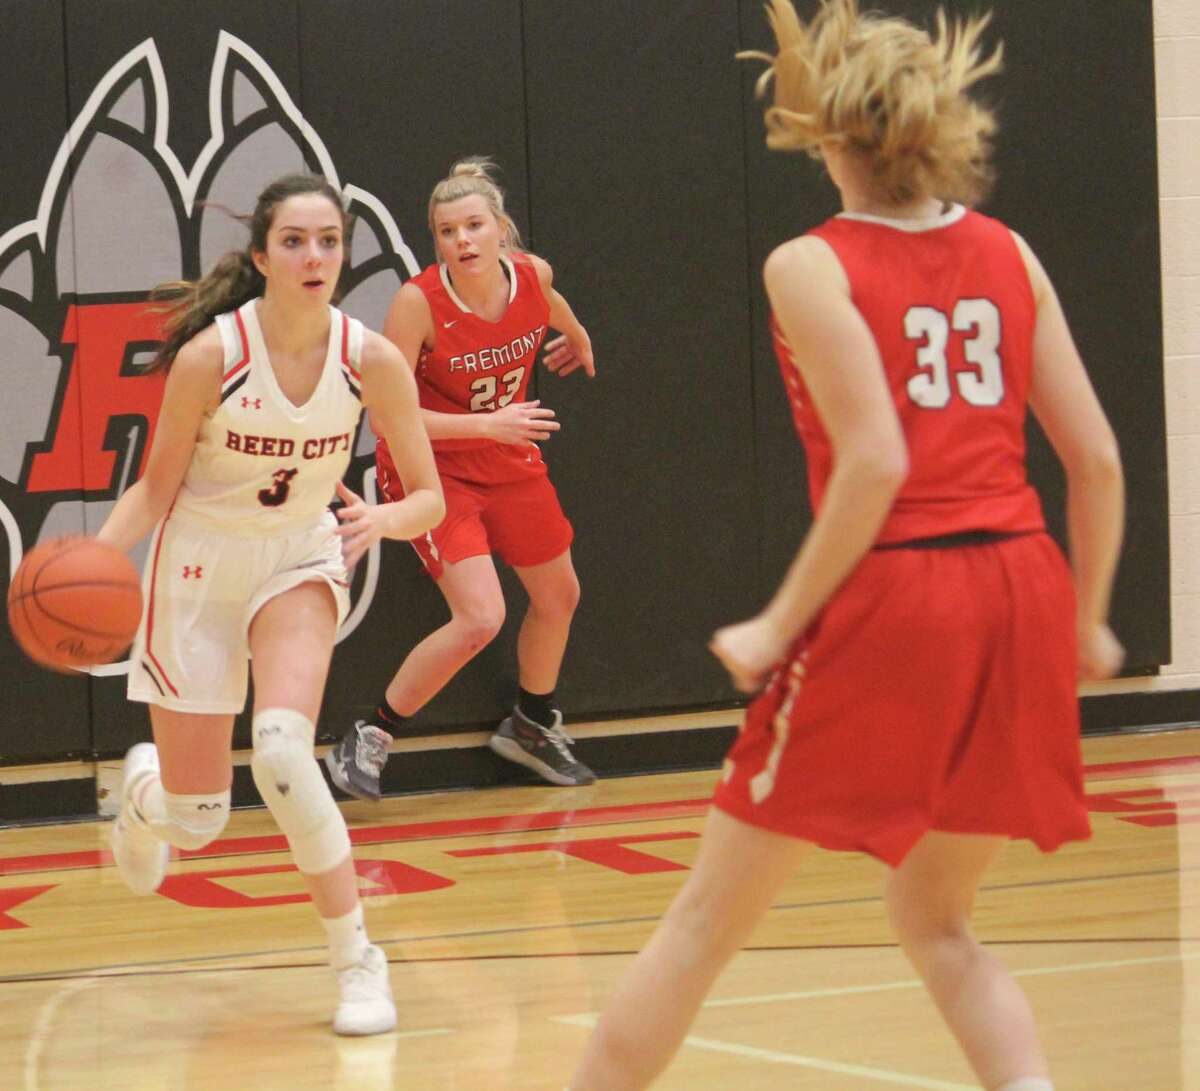 Demi Lodholtz (left) will be a junior this season for Reed City. (Pioneer file photo)